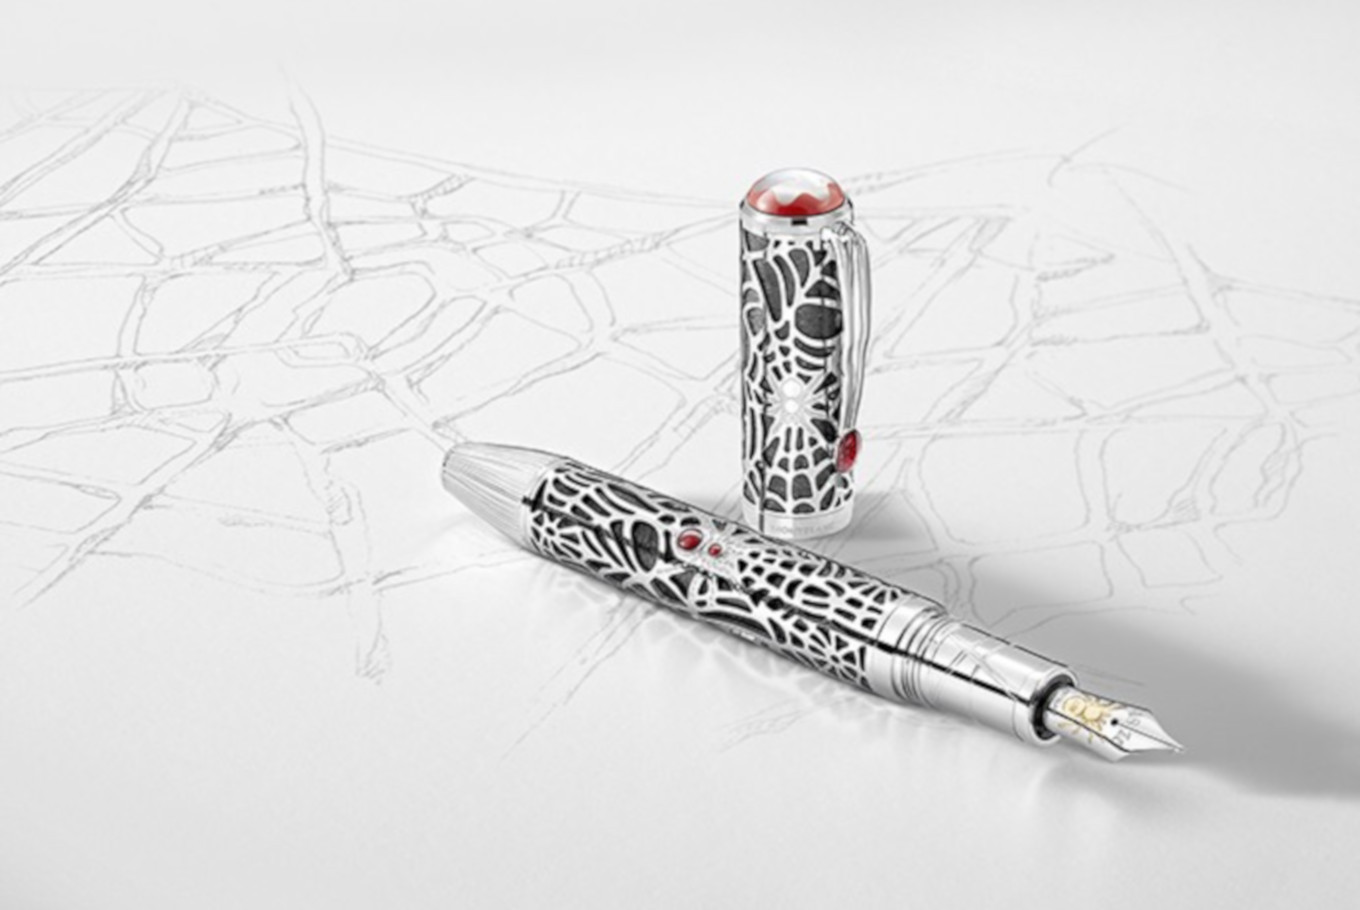 Montblanc extends luxurious legacy with High Artistry collection